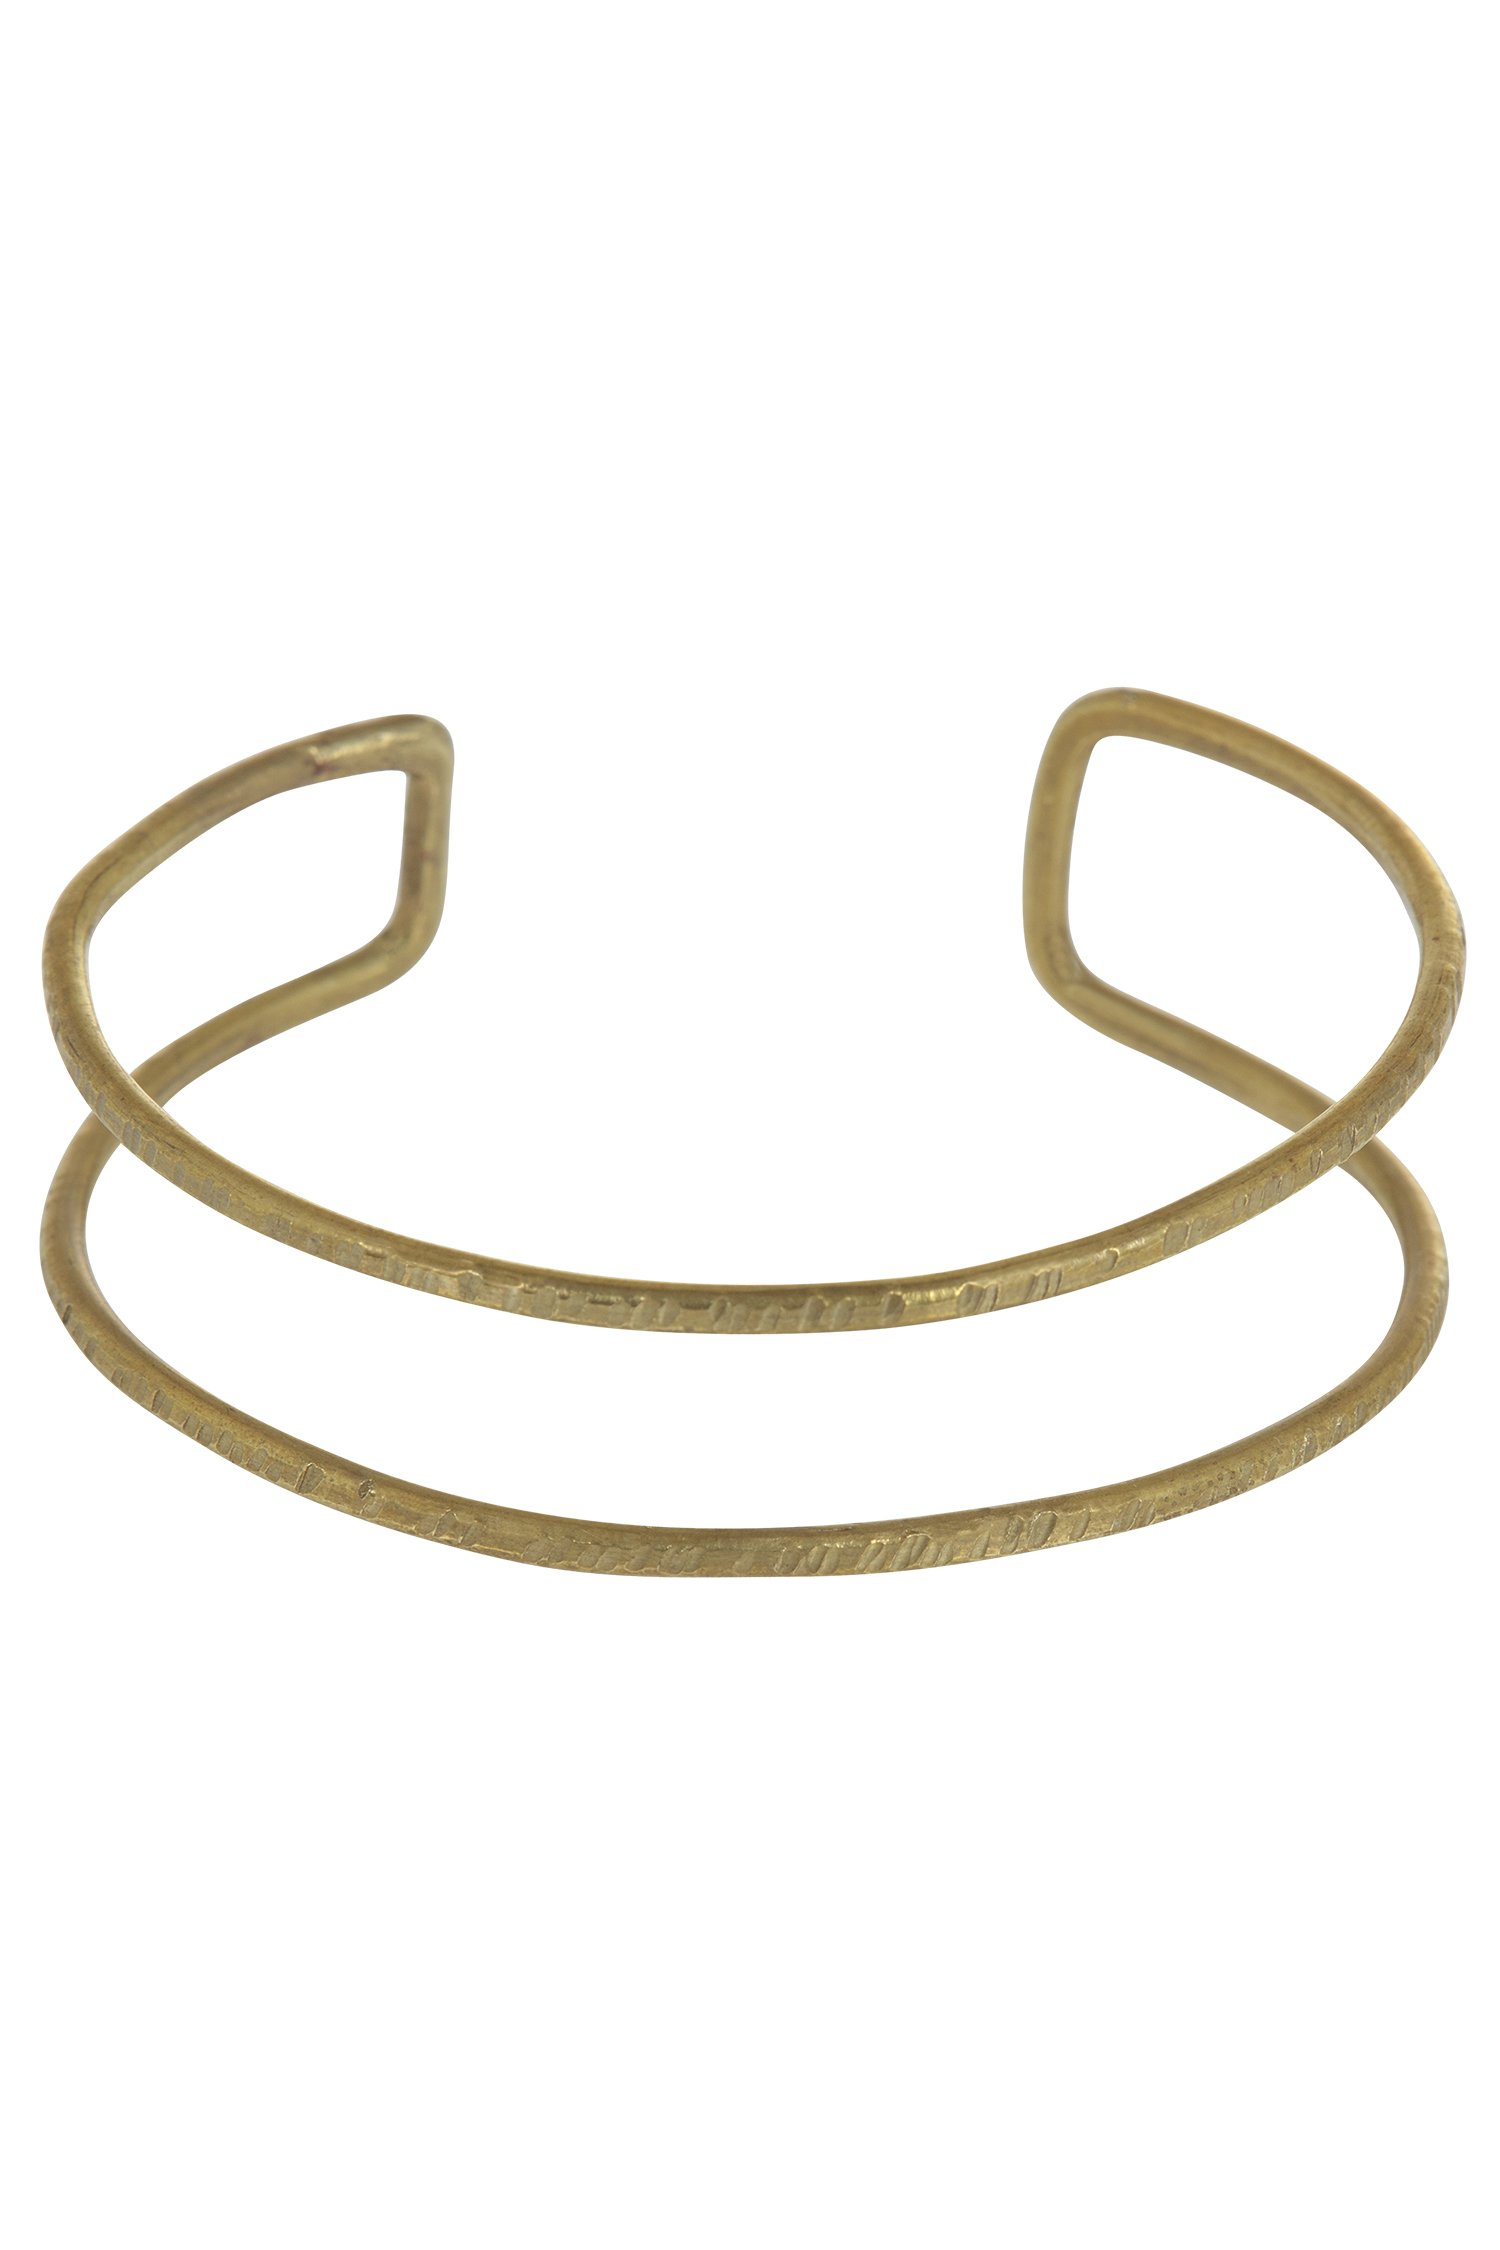 Double Bangle - Brass